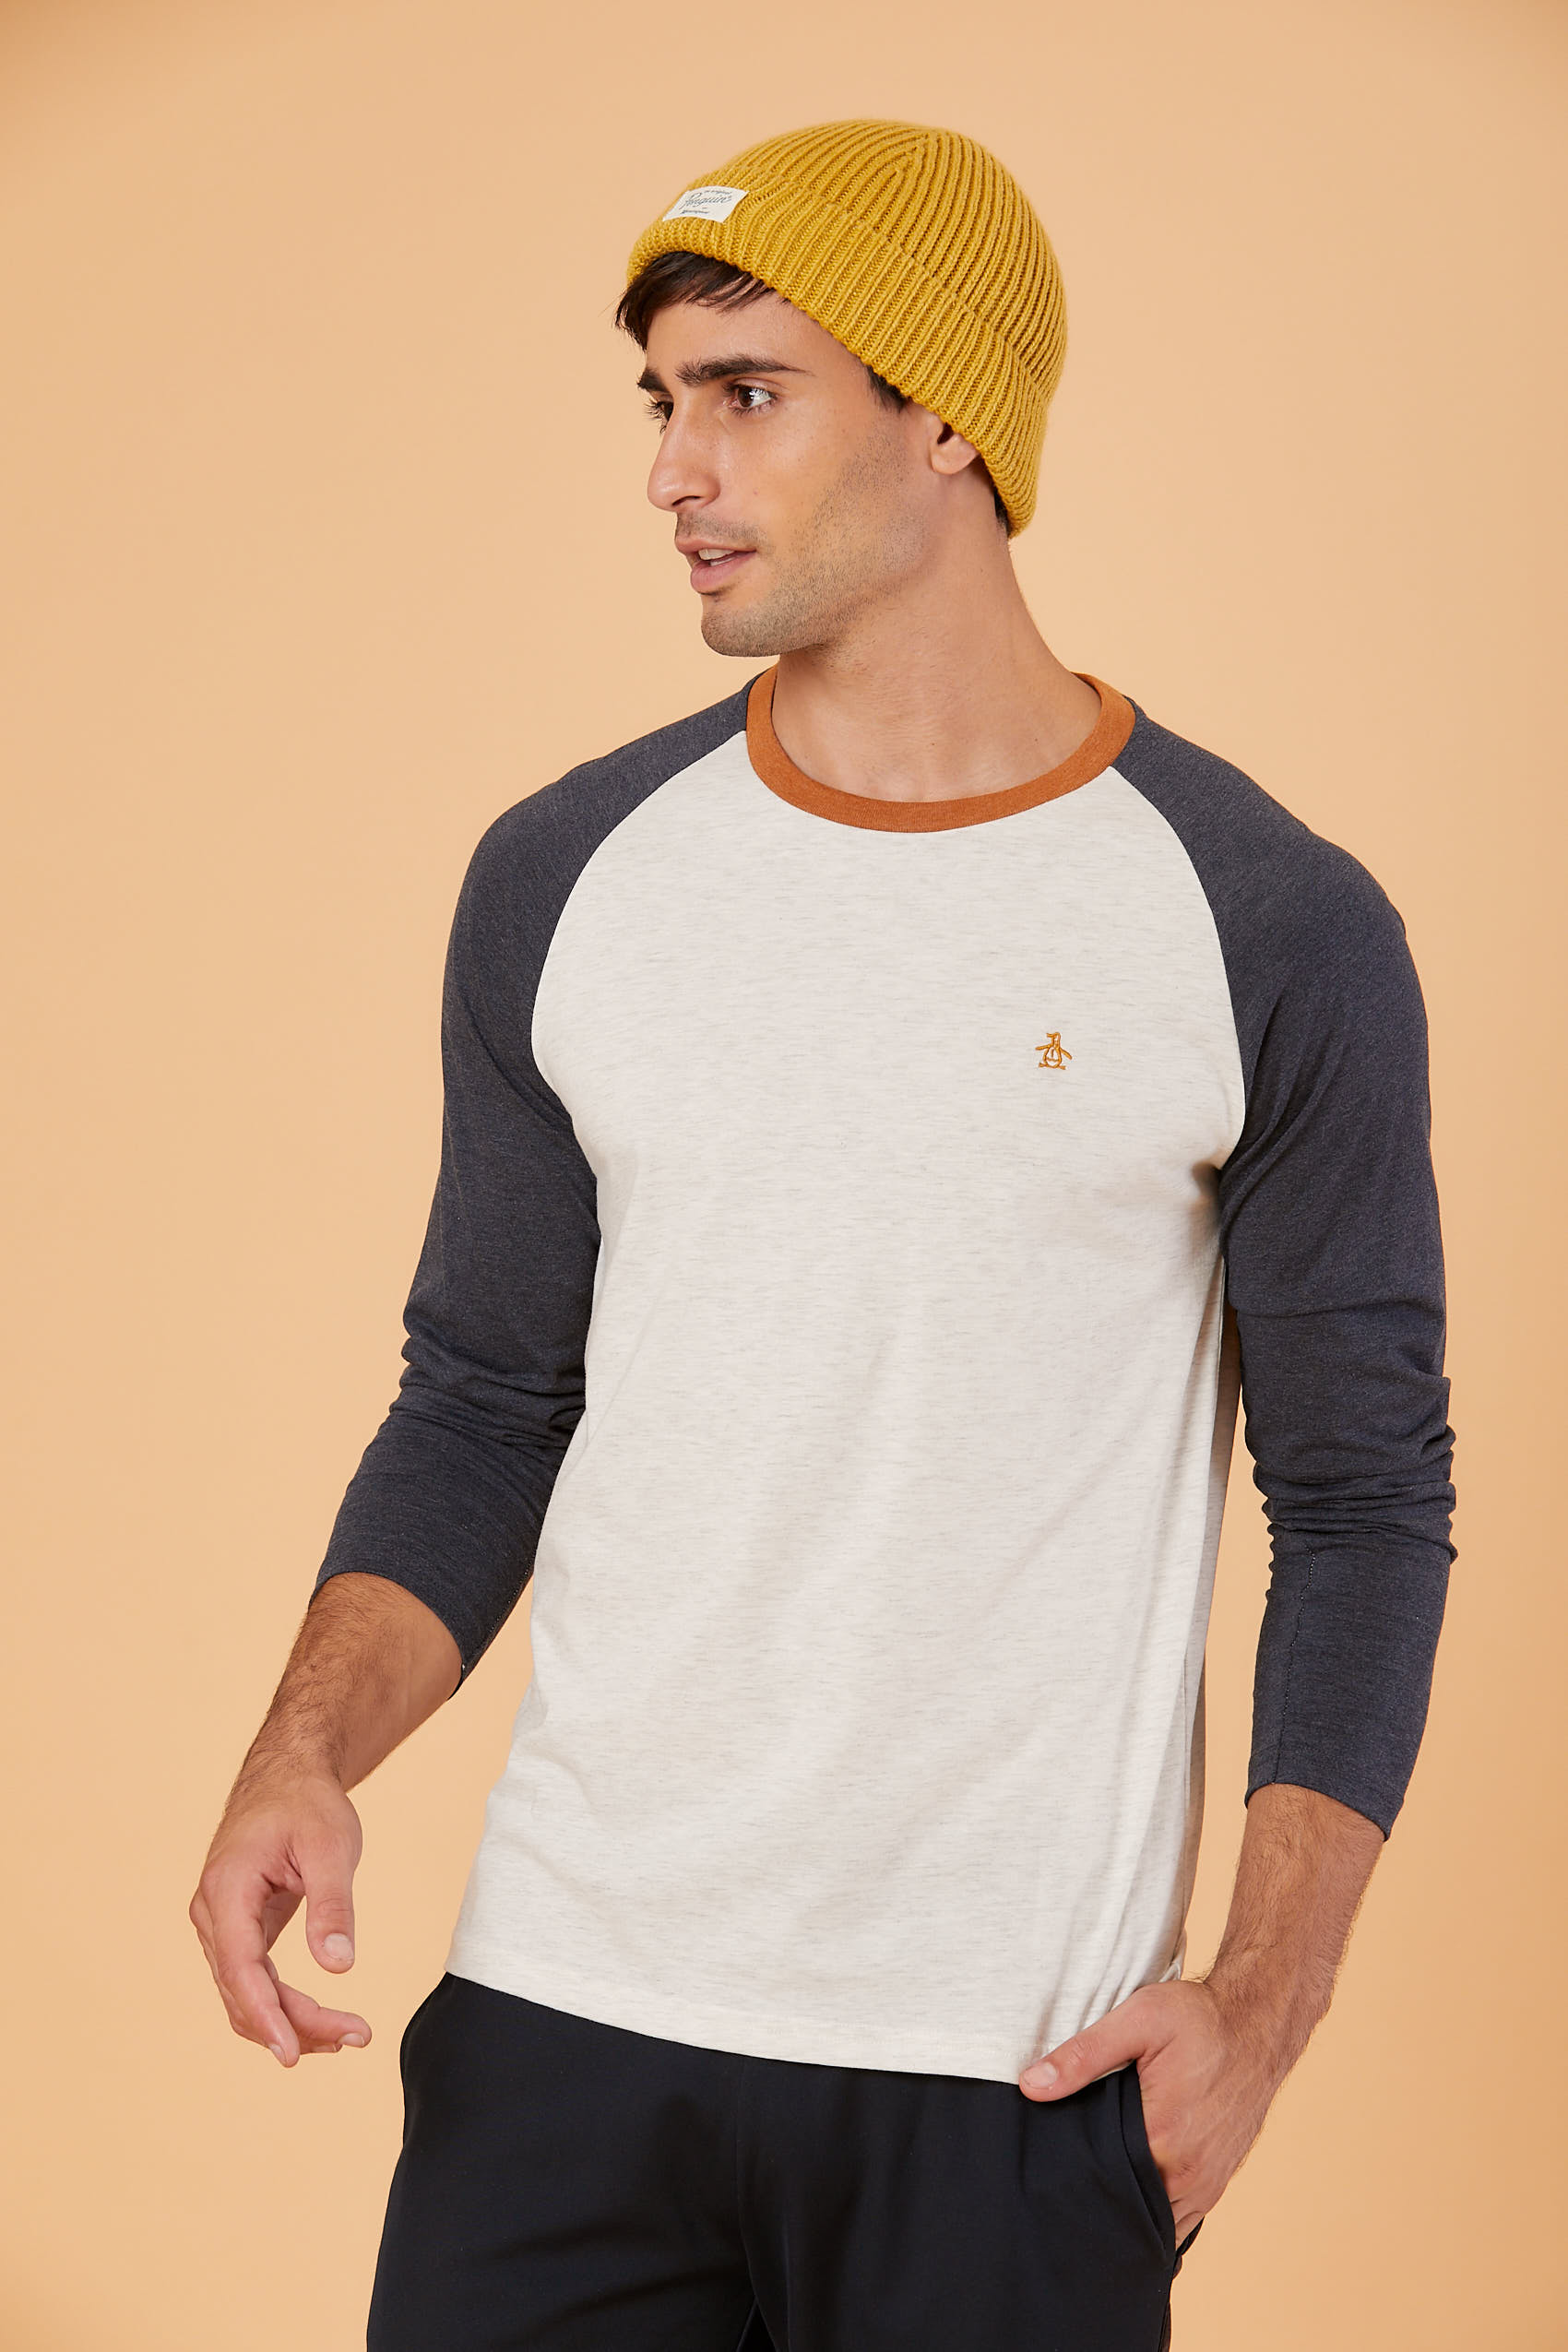 penguin_ls-color-block-tee_43-03-2021__picture-19458